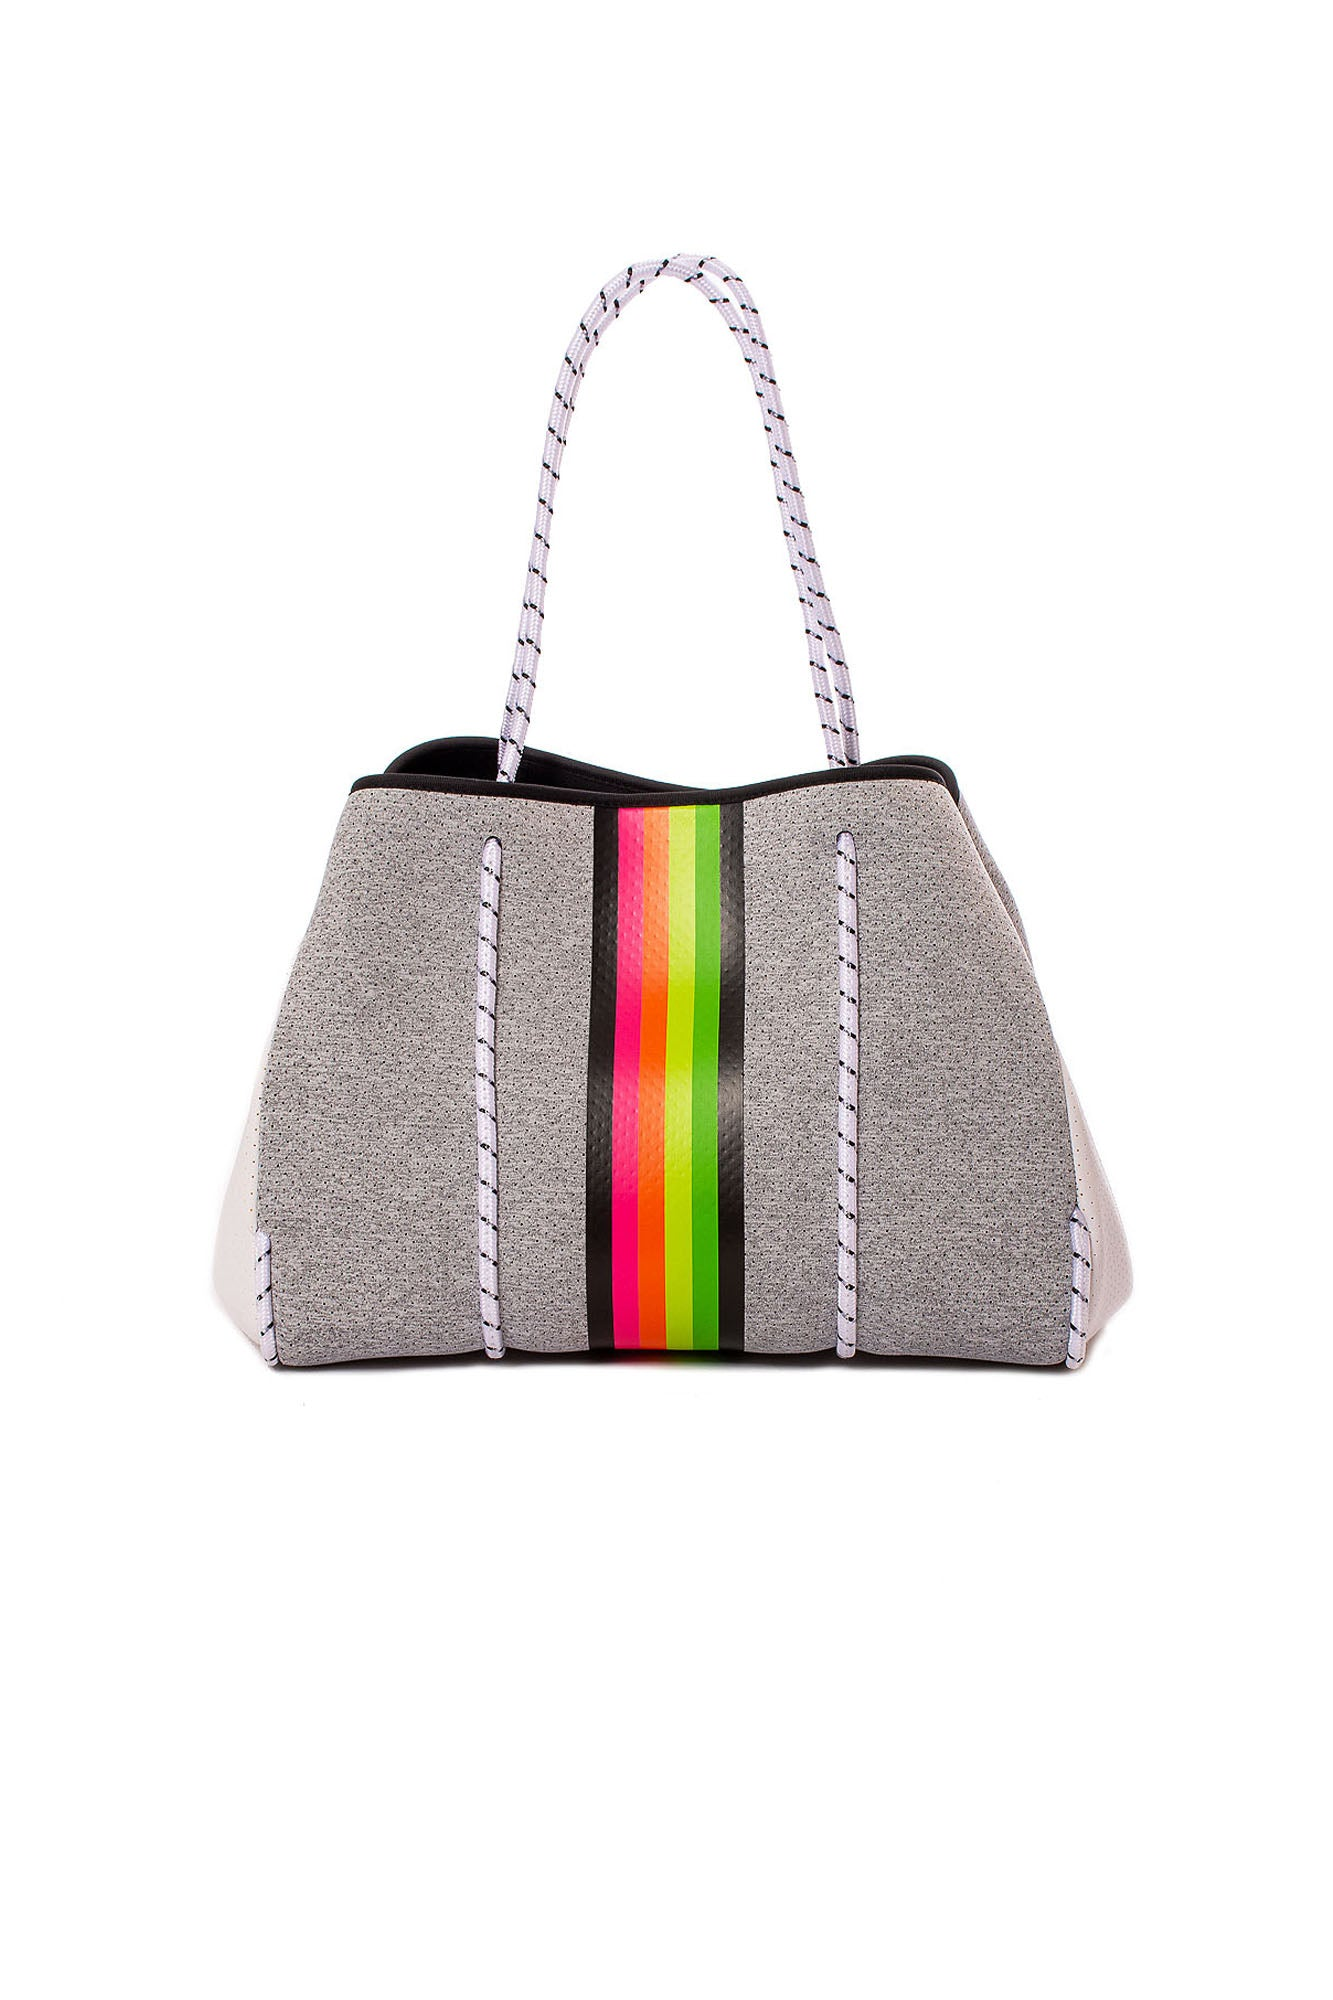 Haute Shore - Greyson Glow Tote Bag with/Tethered Removable Wristlet (GREYSON, Heather Grey w/Stripes)